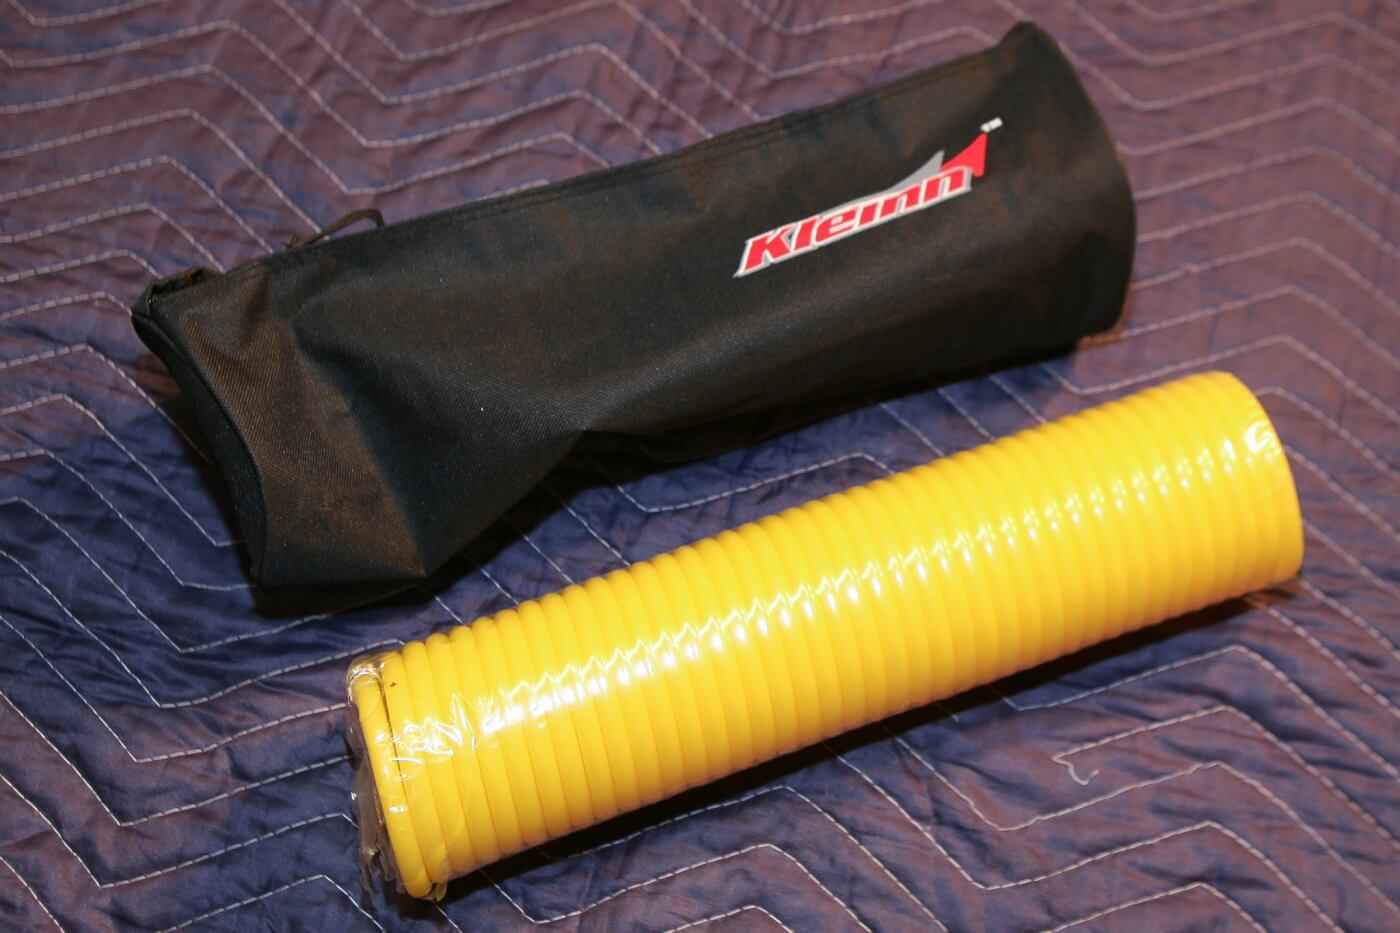 5. The Kleinn air system even comes with a 35-foot-long air hose to make inflating a buddy's flat tire a cinch.